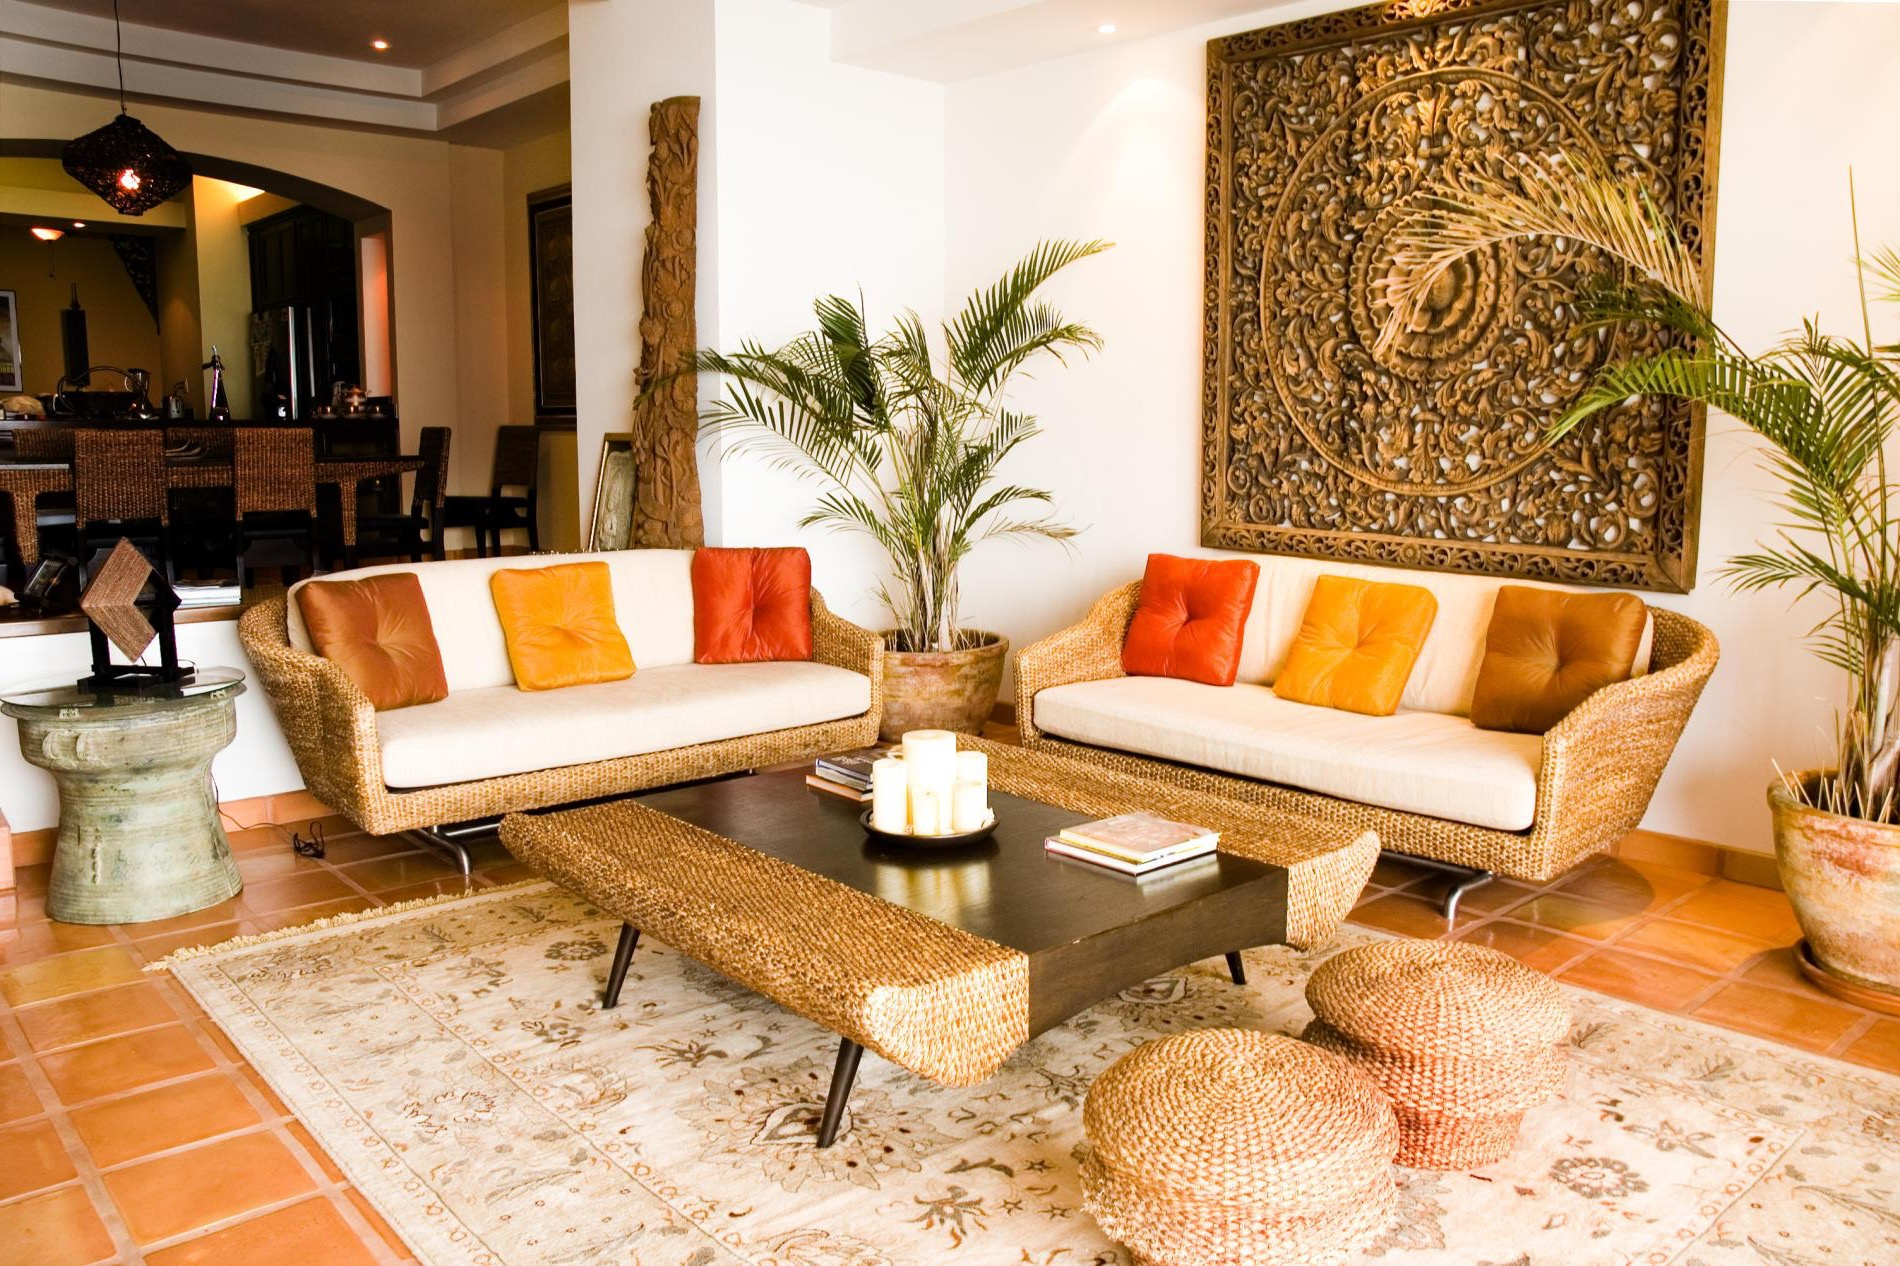 Traditional Indian Living Room With Oriental Wall Decor And Wooden Floor  With Indian Carpet And Rattan